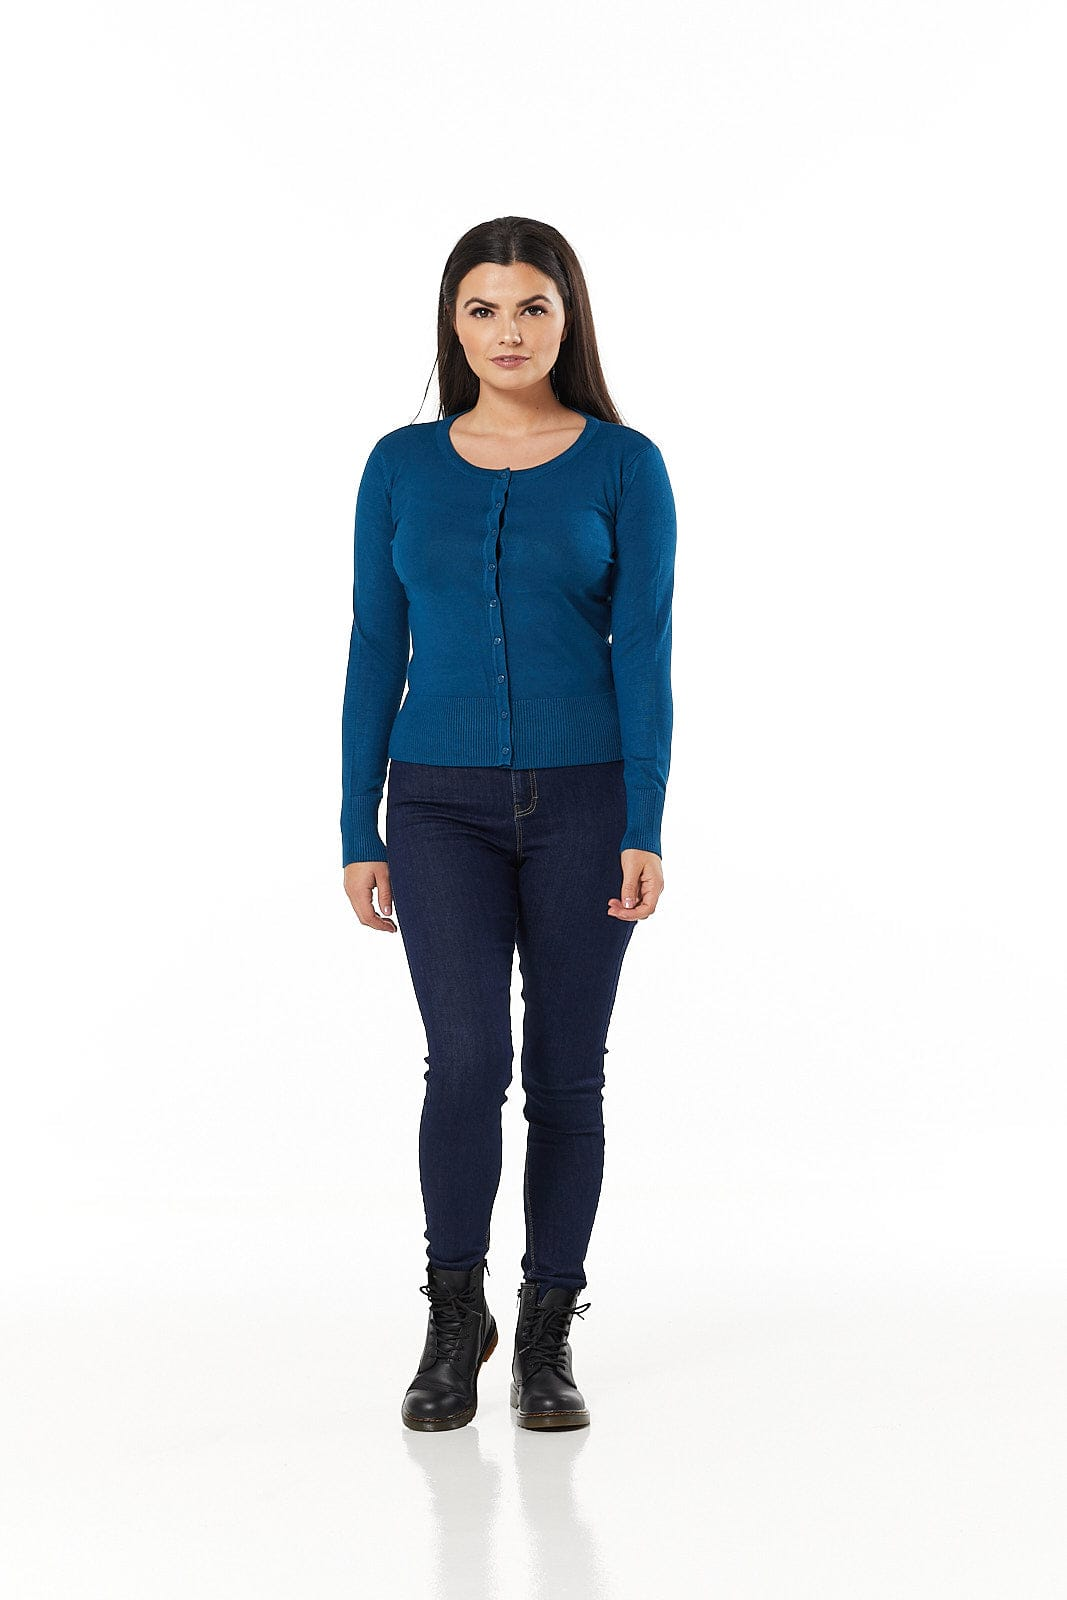 Midnight Blue 9 button Cardigan